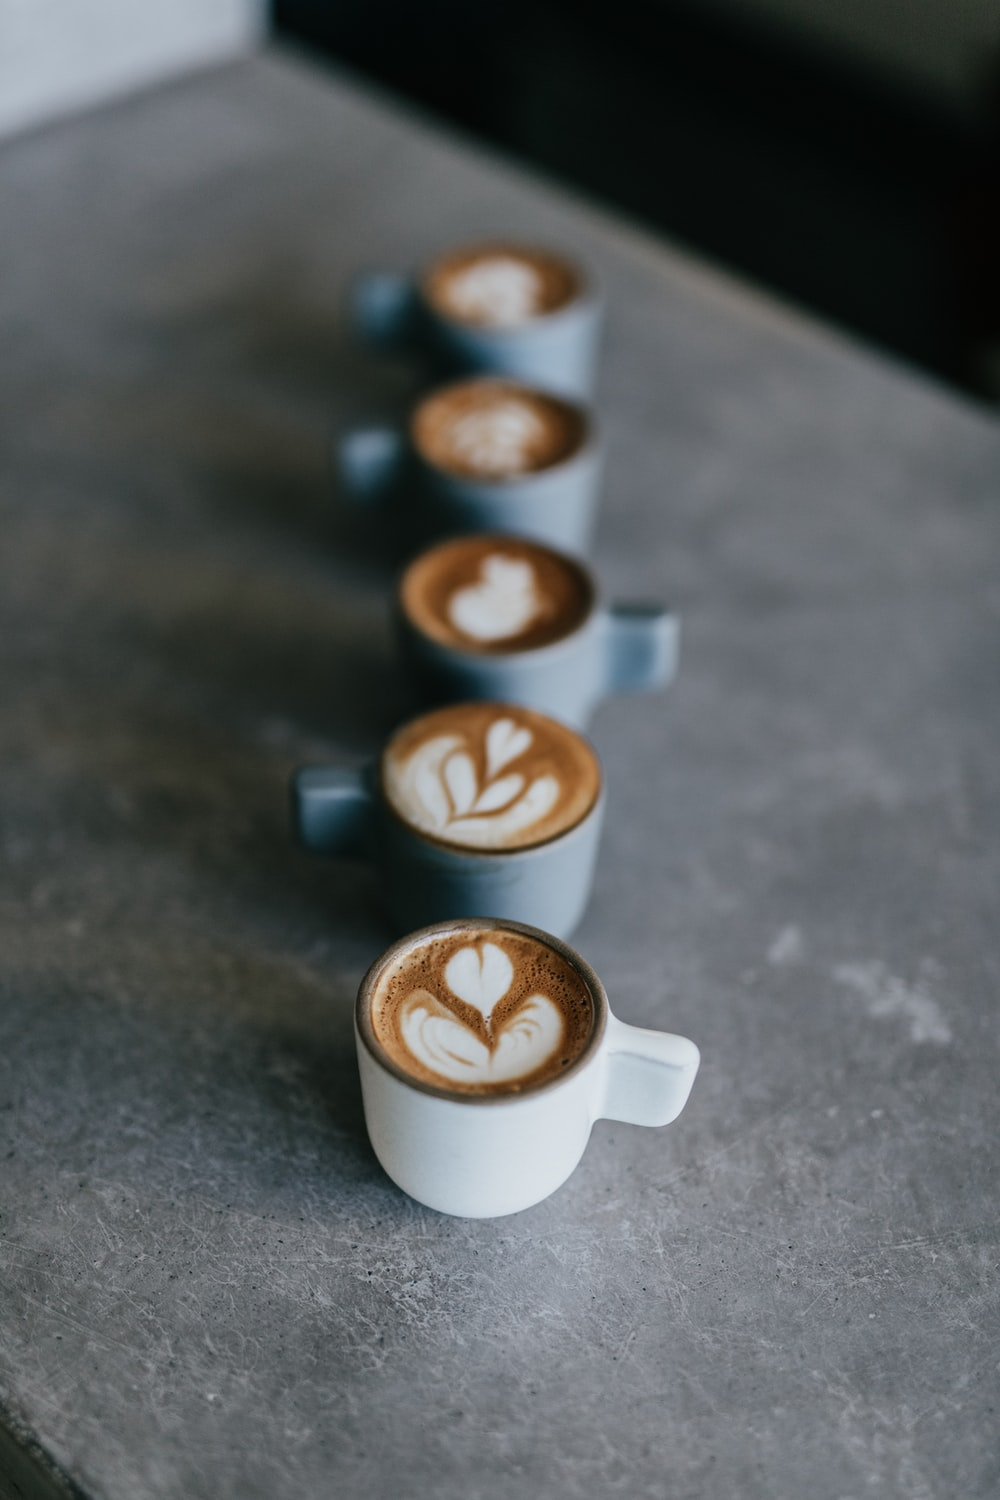 selective focus photography of white mug with latte forming heart